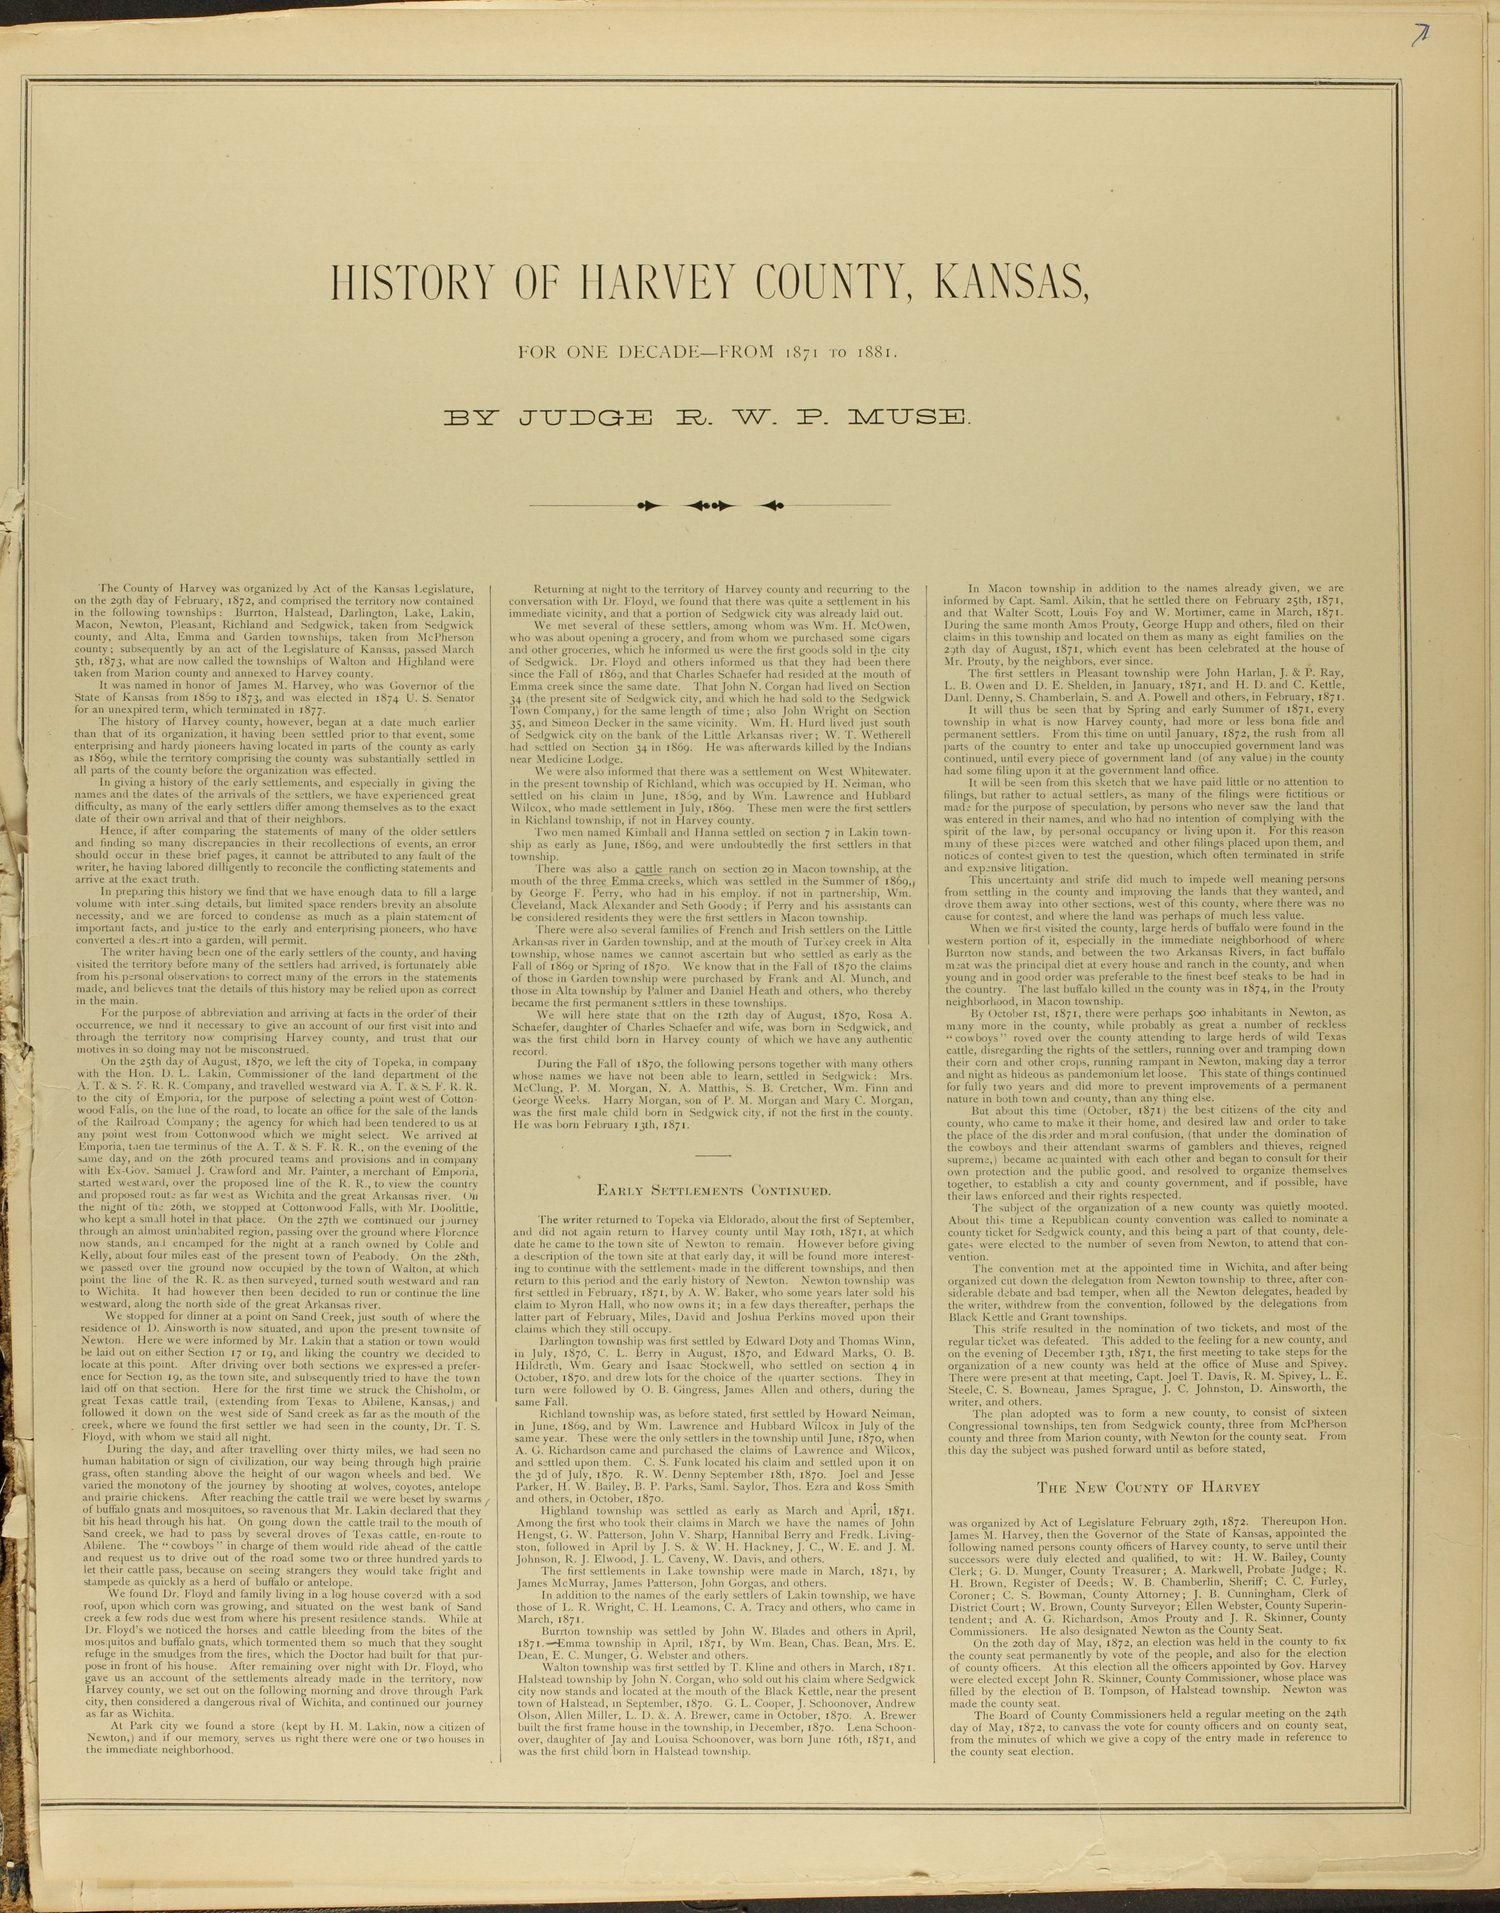 Historical atlas of Harvey County, Kansas - 7